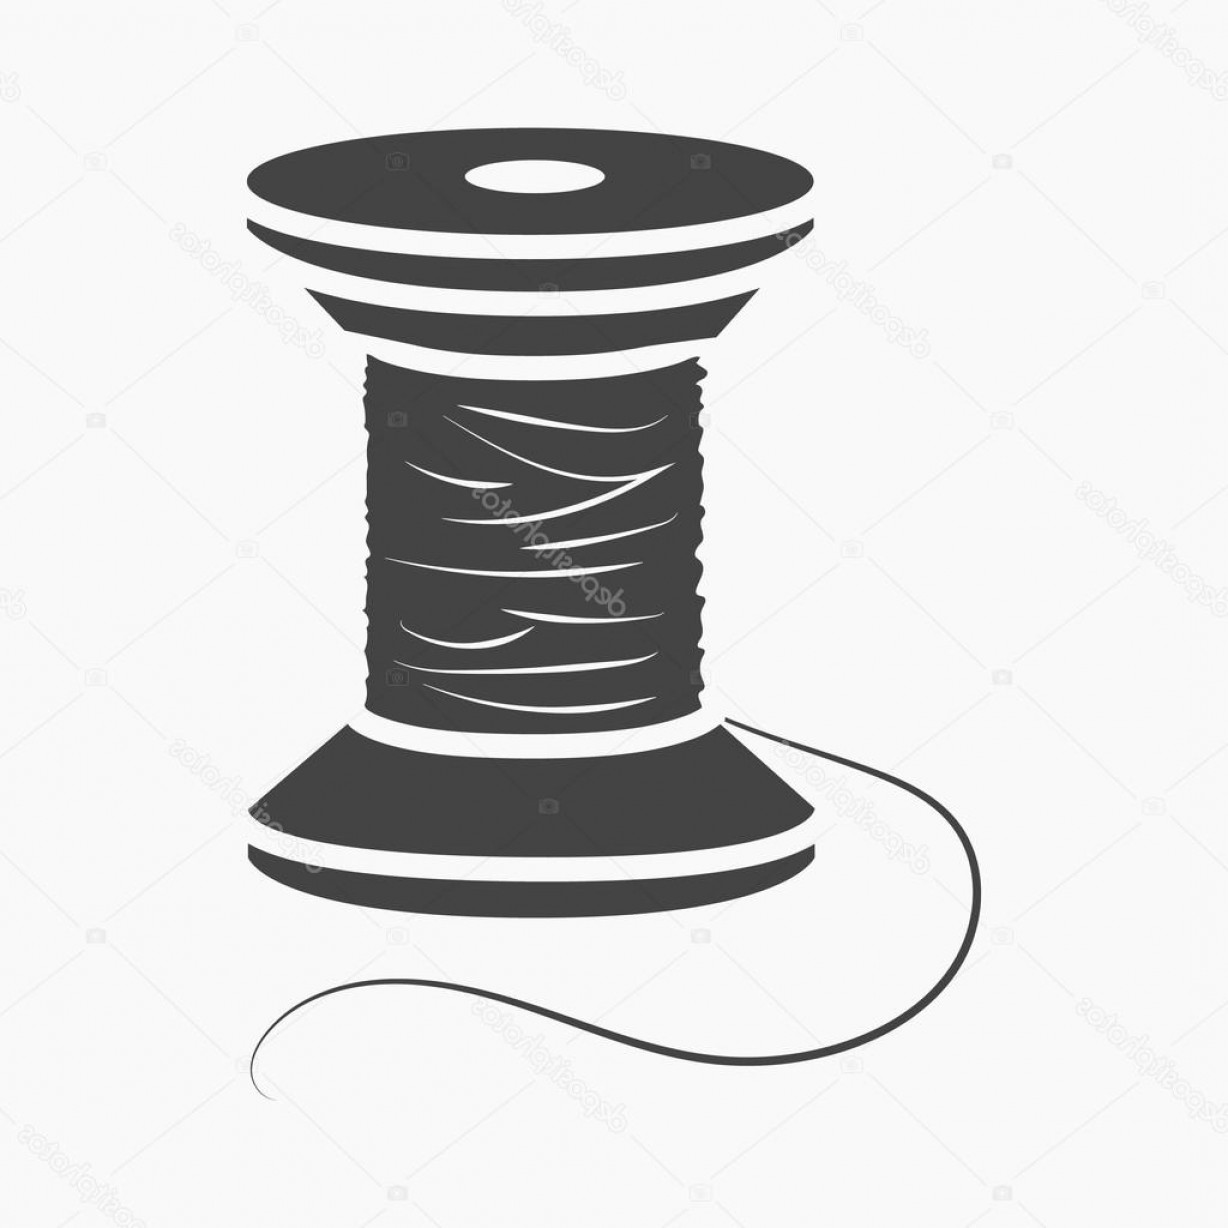 Sewing Spool Vector: Stock Illustration Spool Of Thread Icon Of